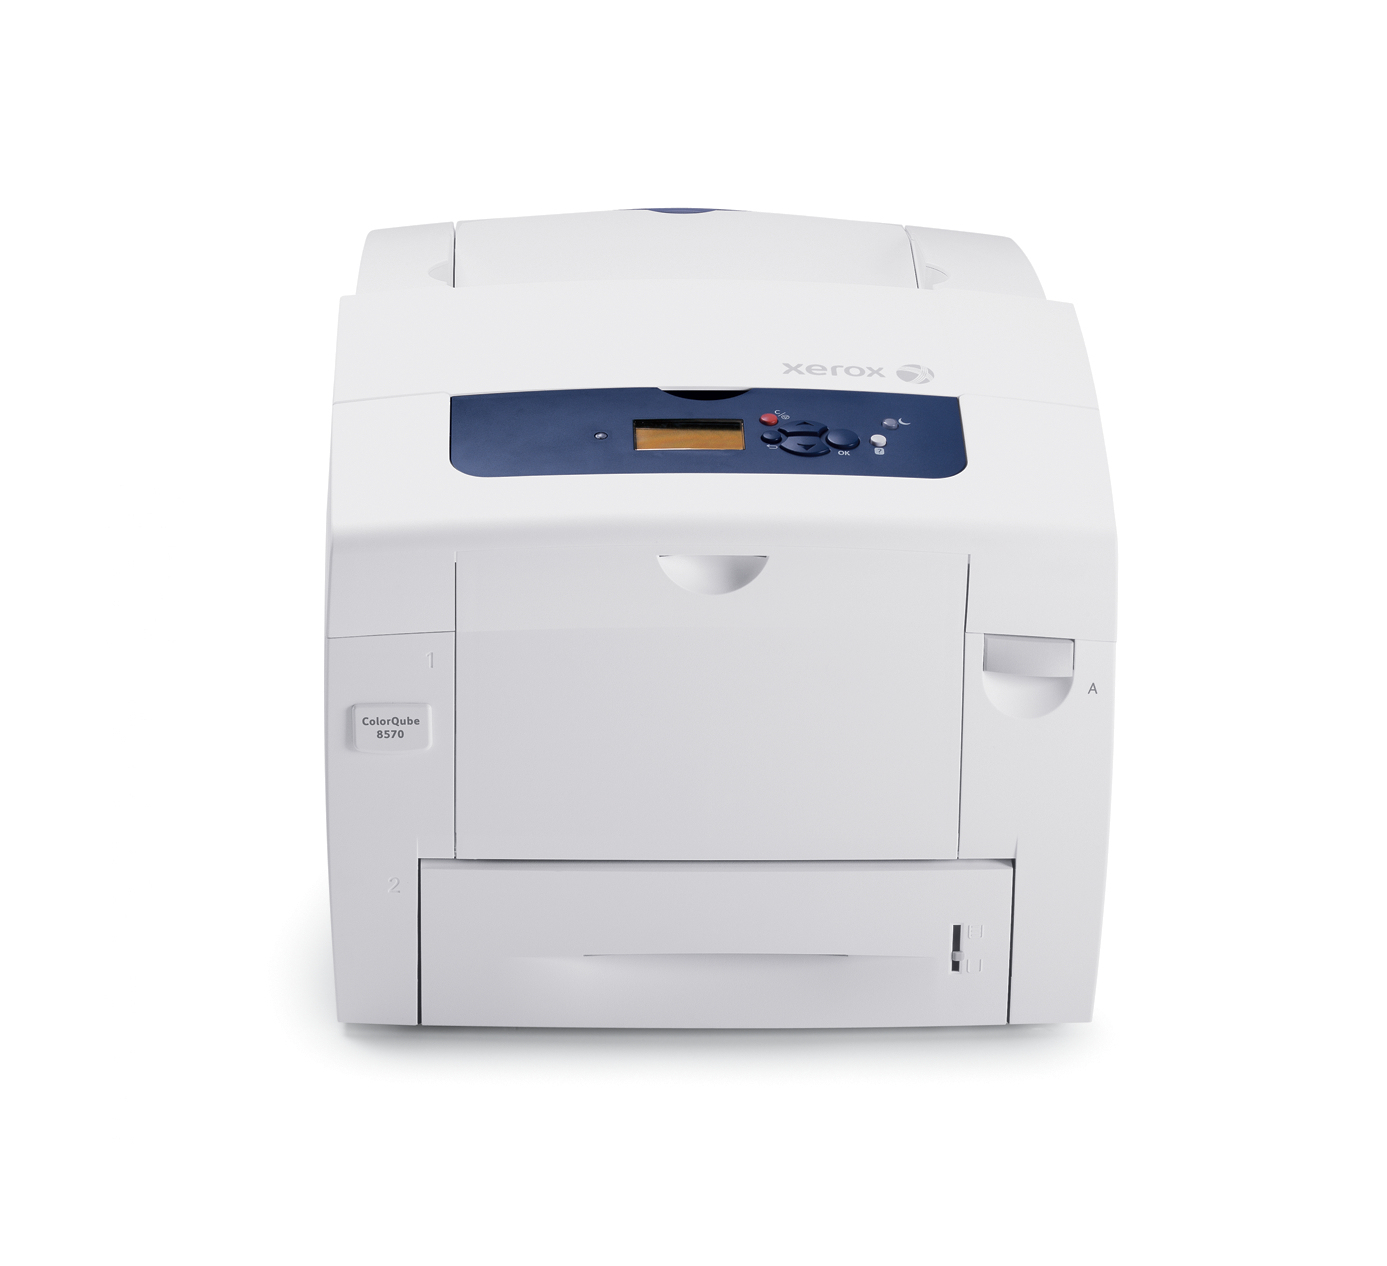 8570_ANM Xerox ColorQube 8570/ANM printer- Refurbished